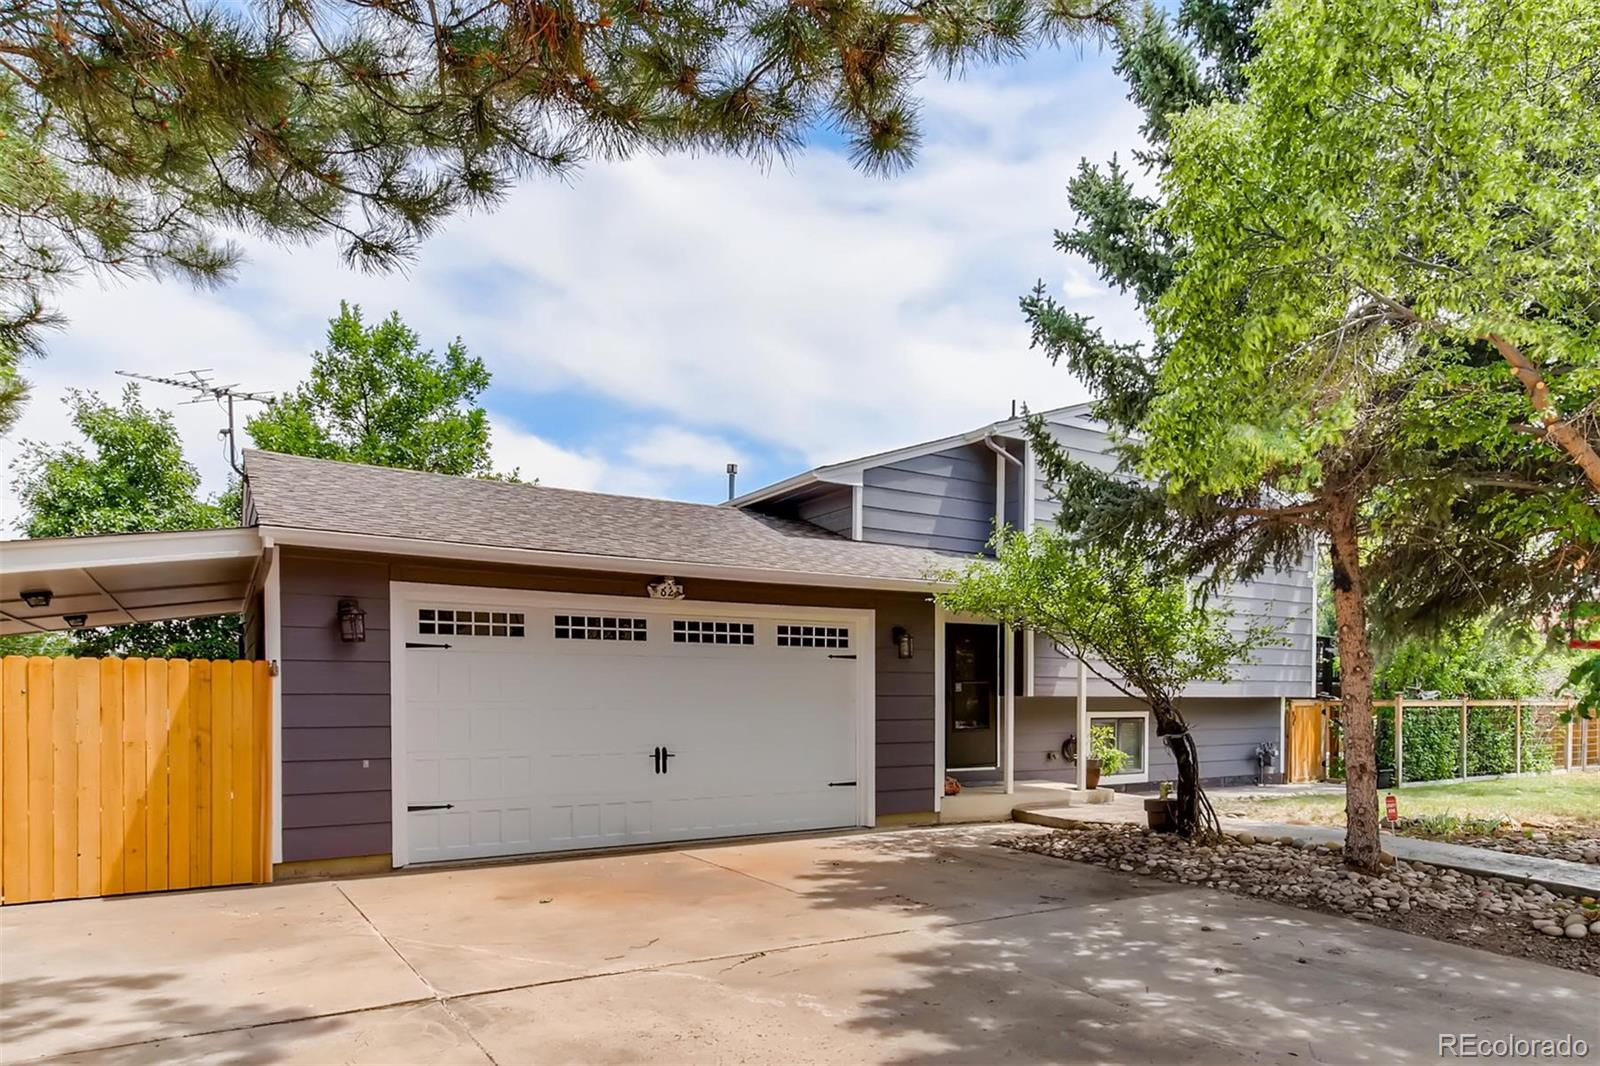 MLS# 9080824 - 2 - 7824 S Cody Street, Littleton, CO 80128